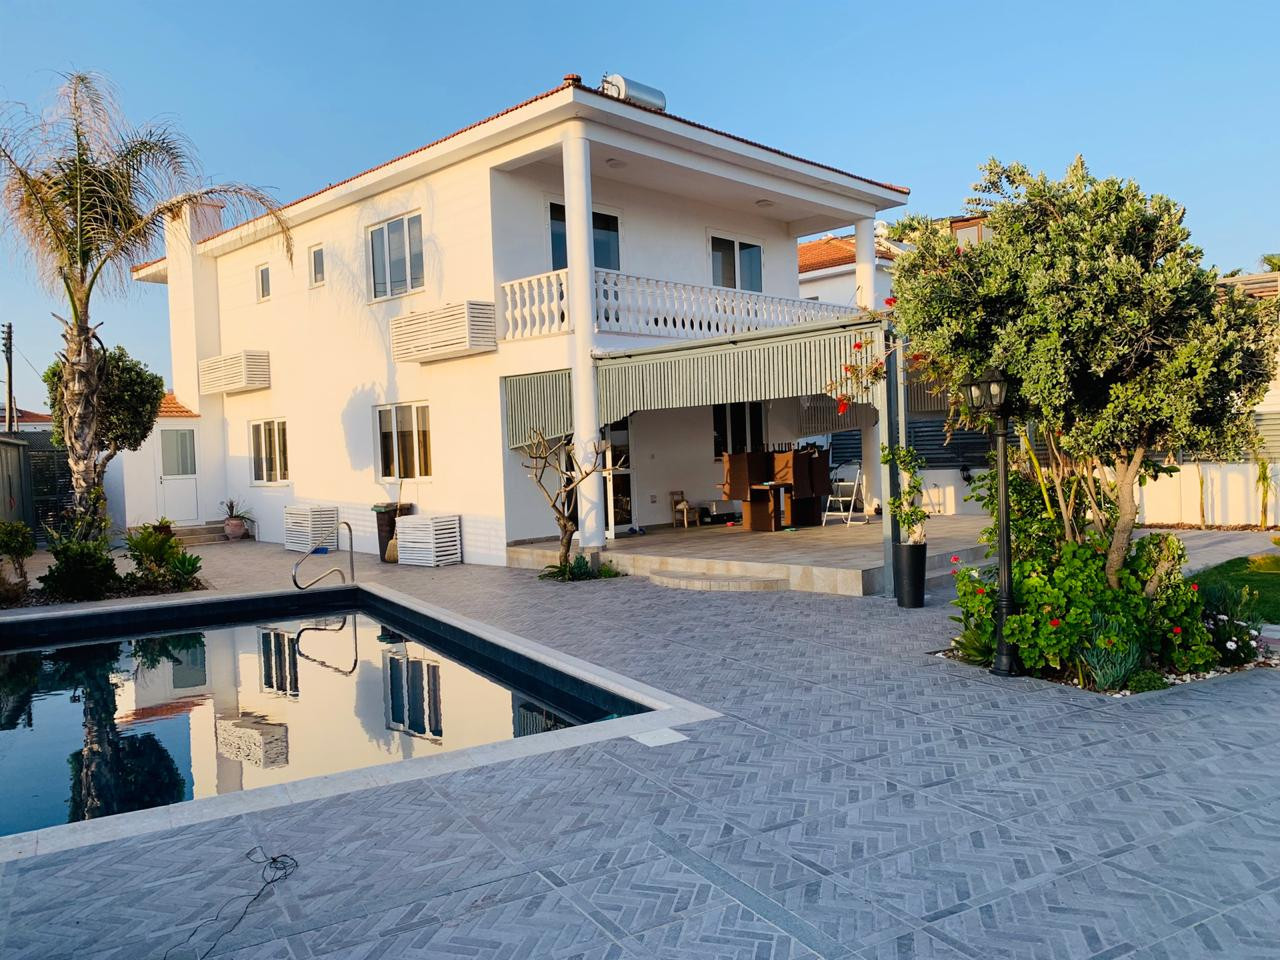 FC-29146: House (Detached) in Kiti, Larnaca for Sale - #18